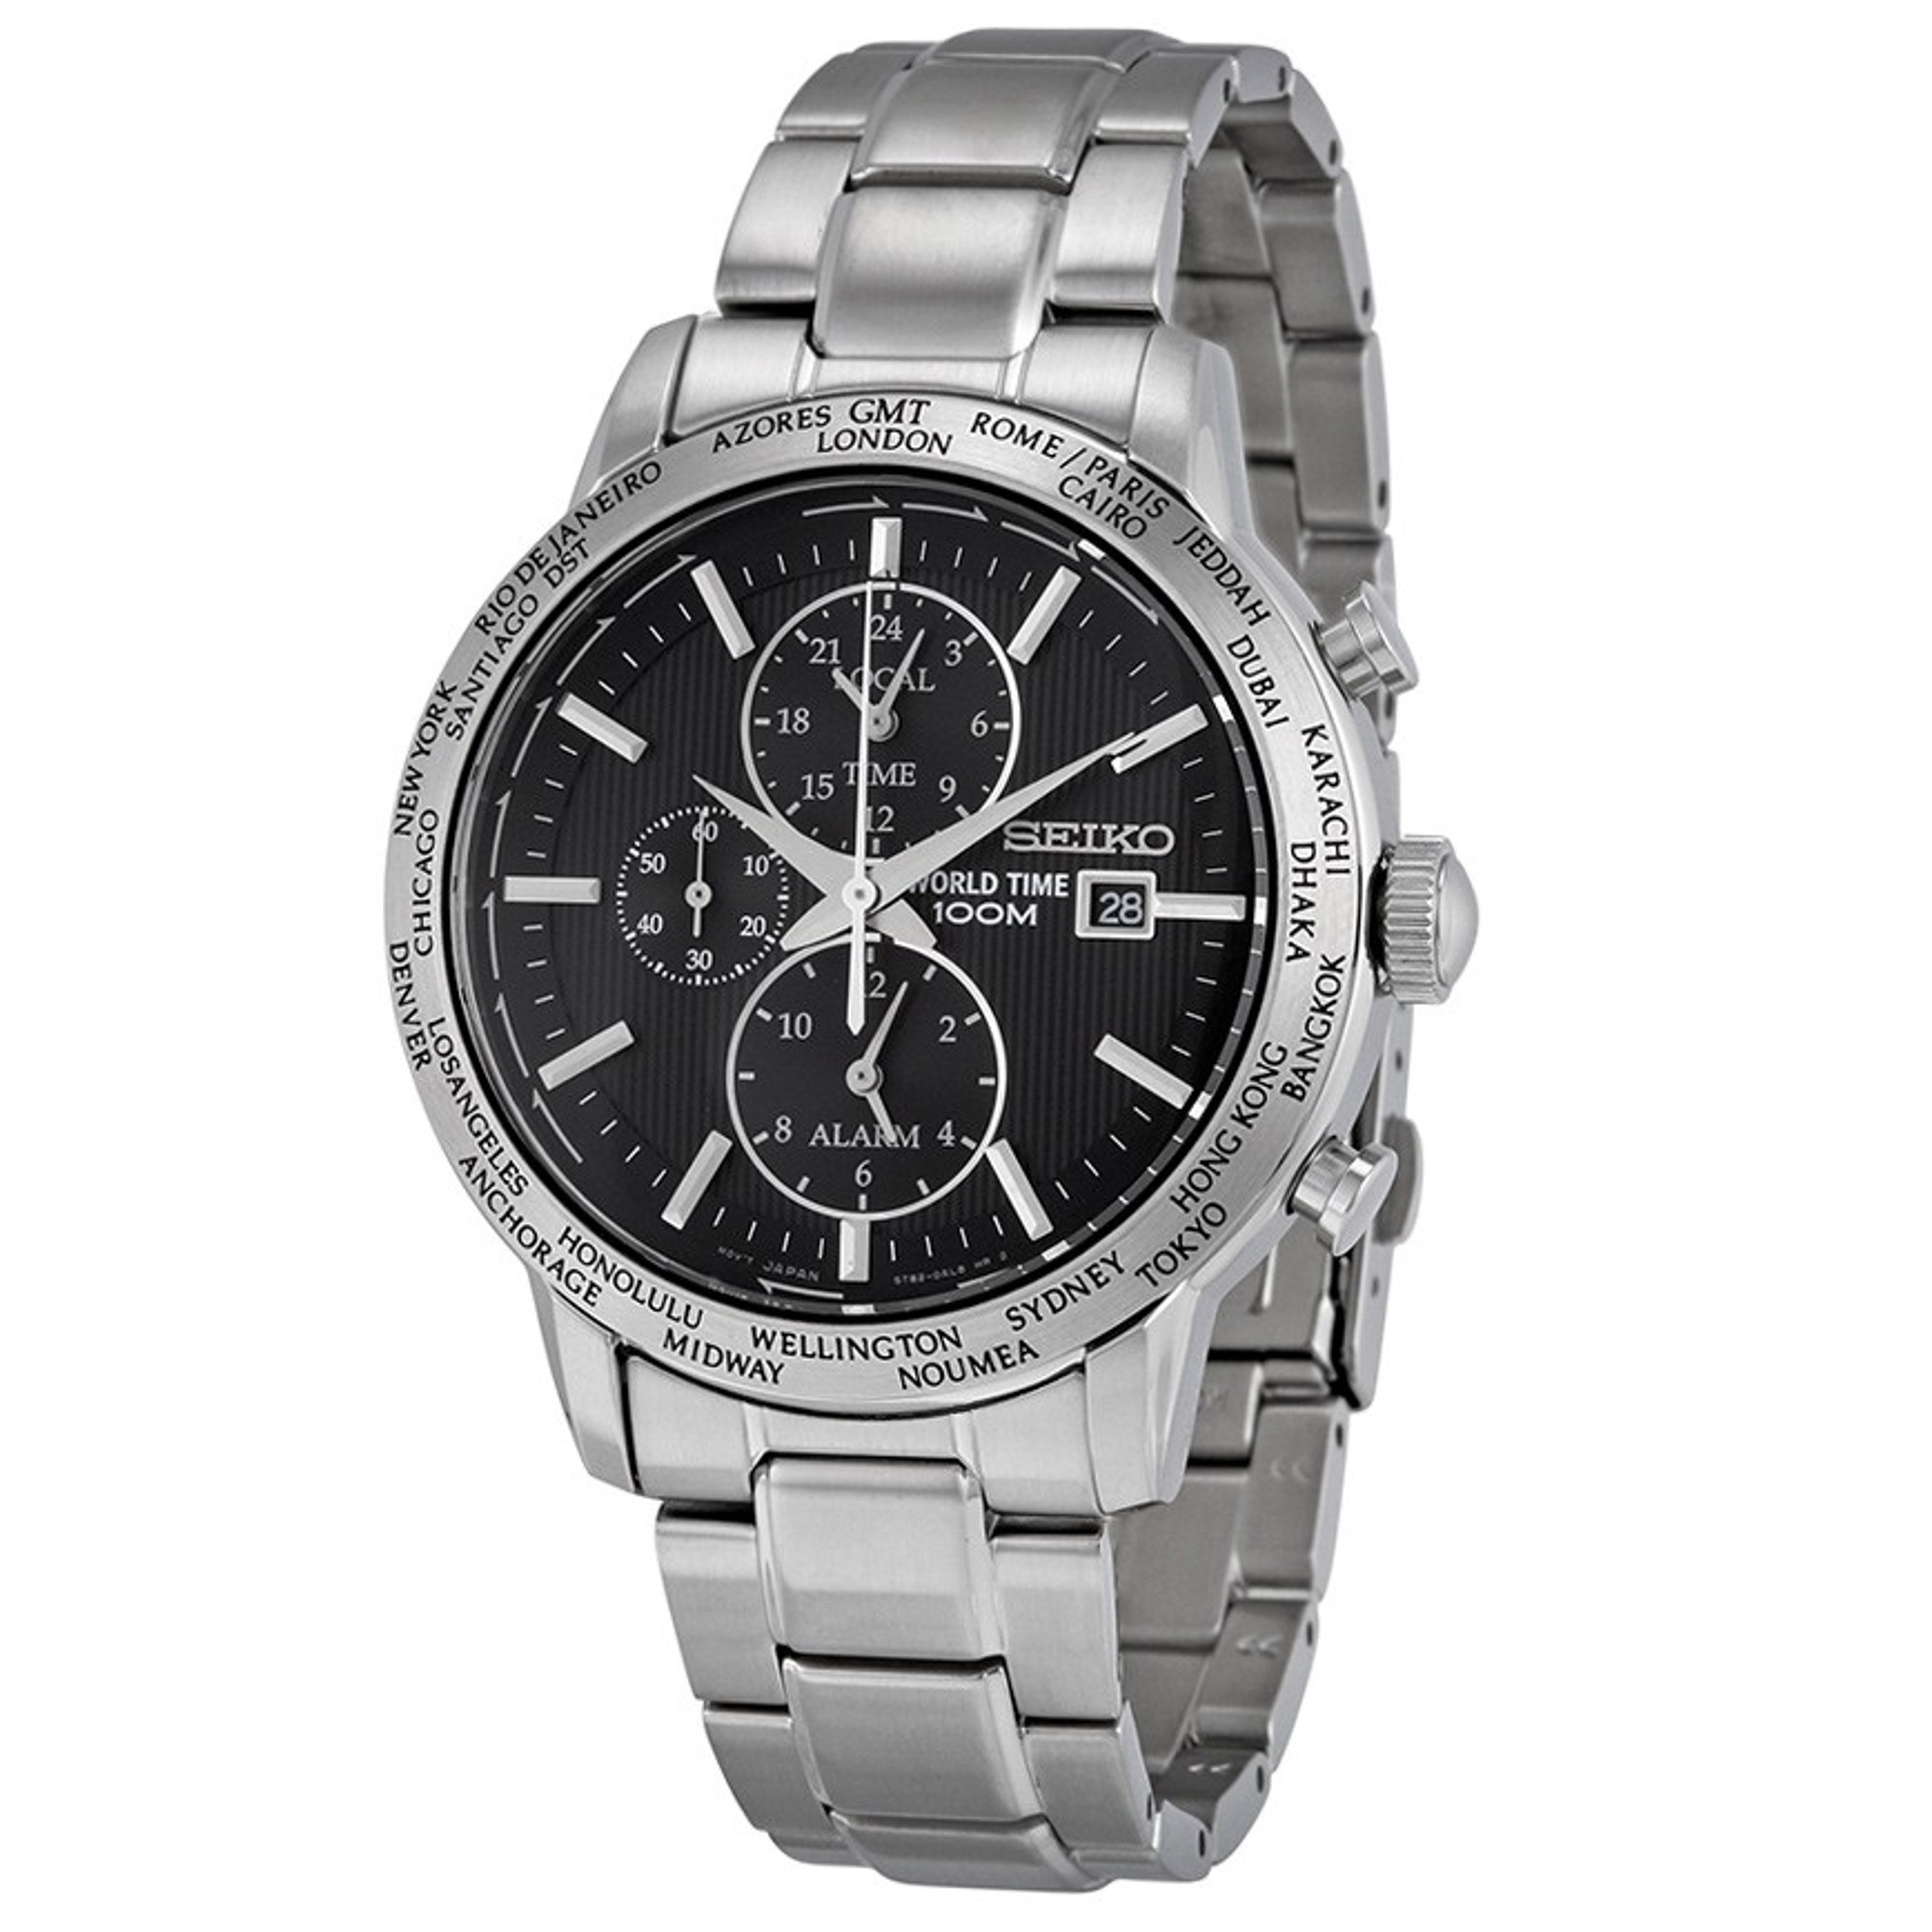 SEIKO World Time Alarm Chronograph SPL049P1